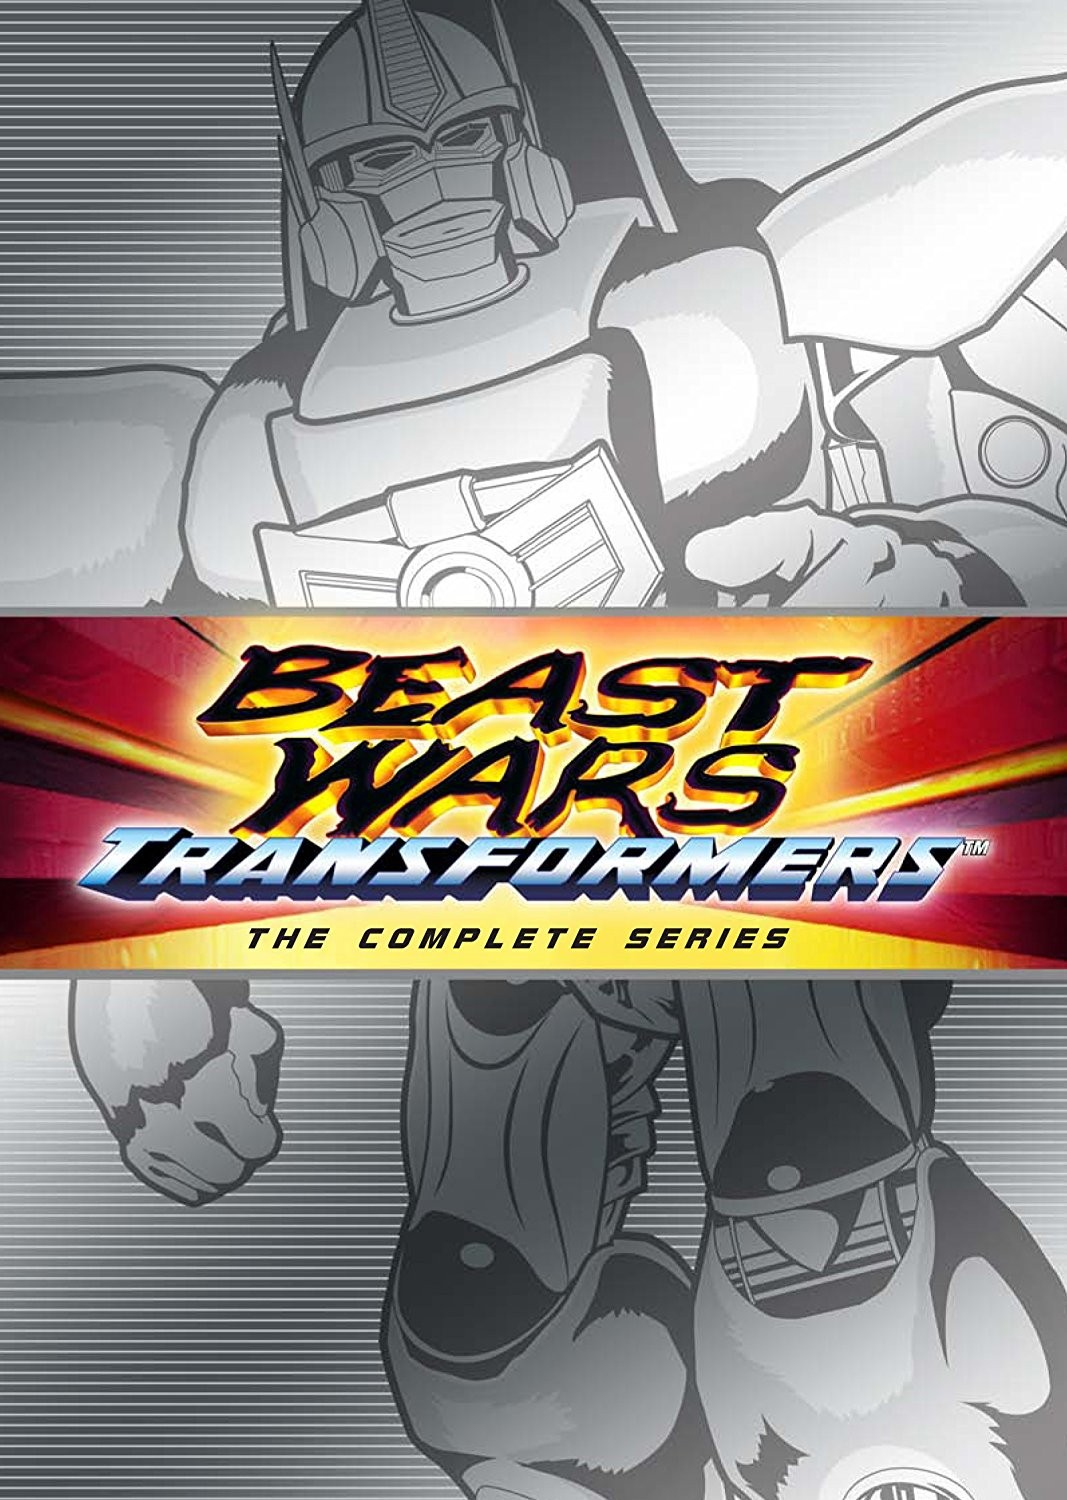 Transformers News: Shout! Factory Beast Wars Box Set on Sale on Amazon.com